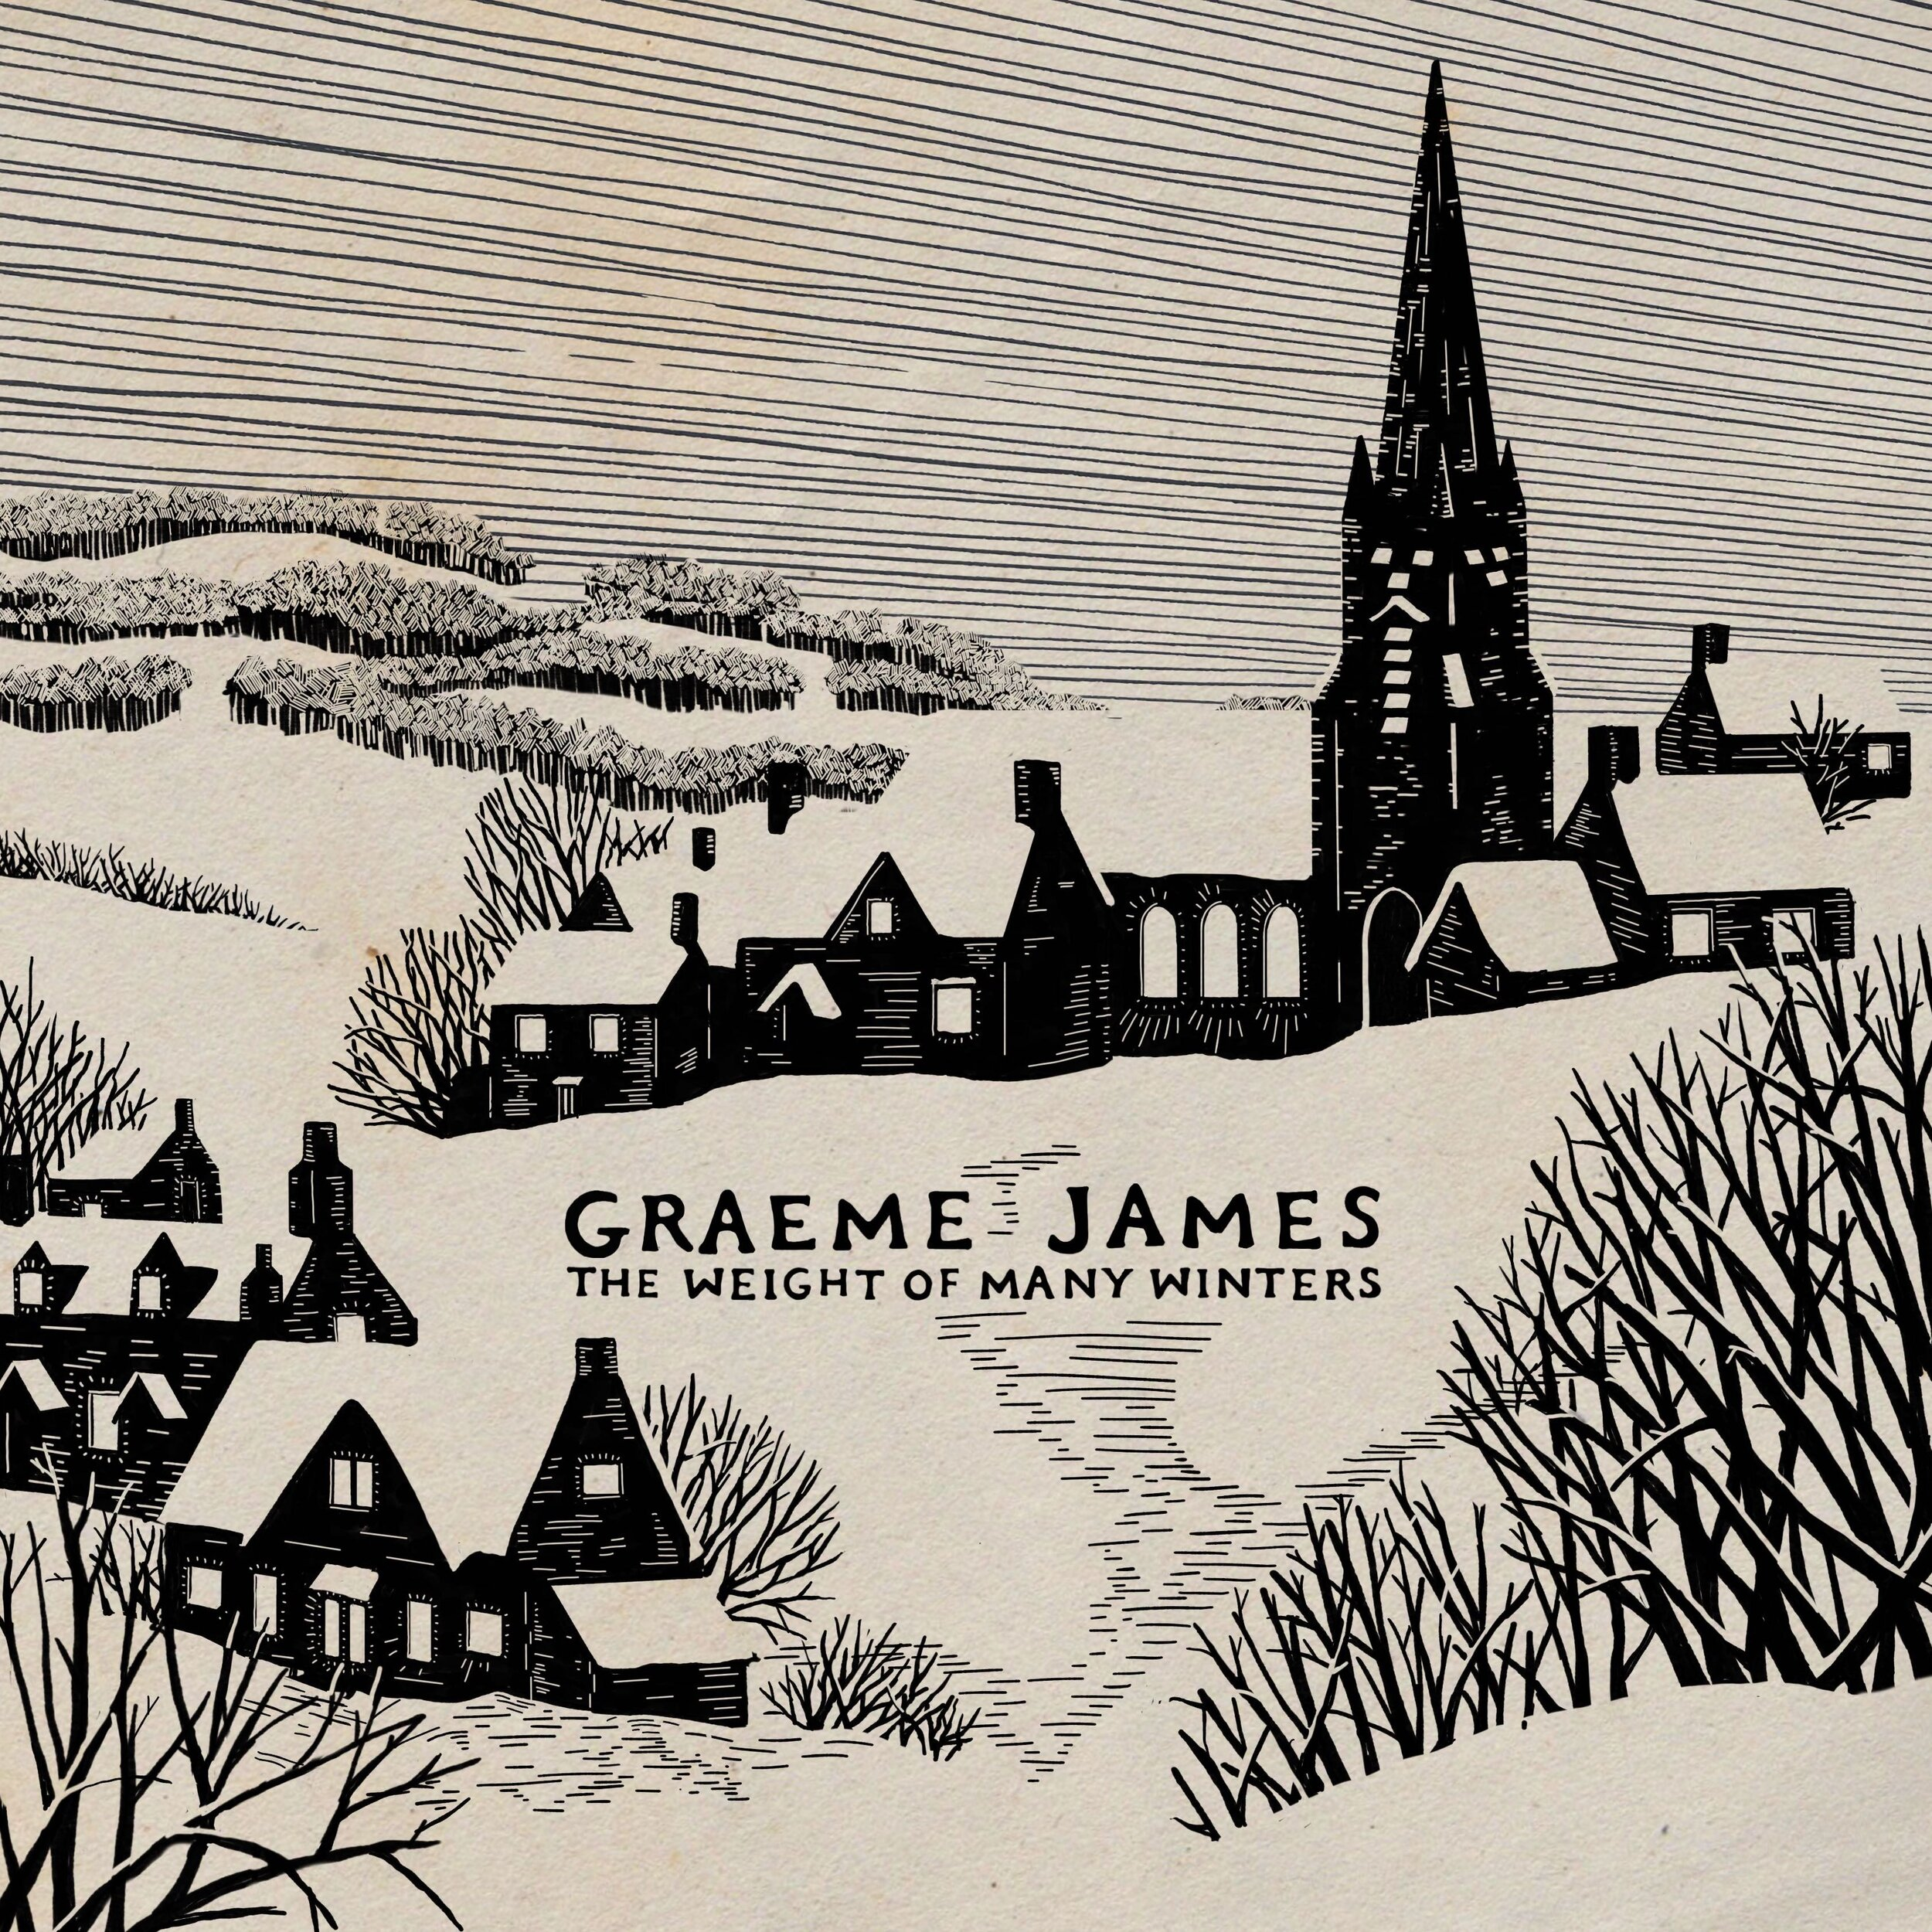 Graeme James - The Weight of Many Winters